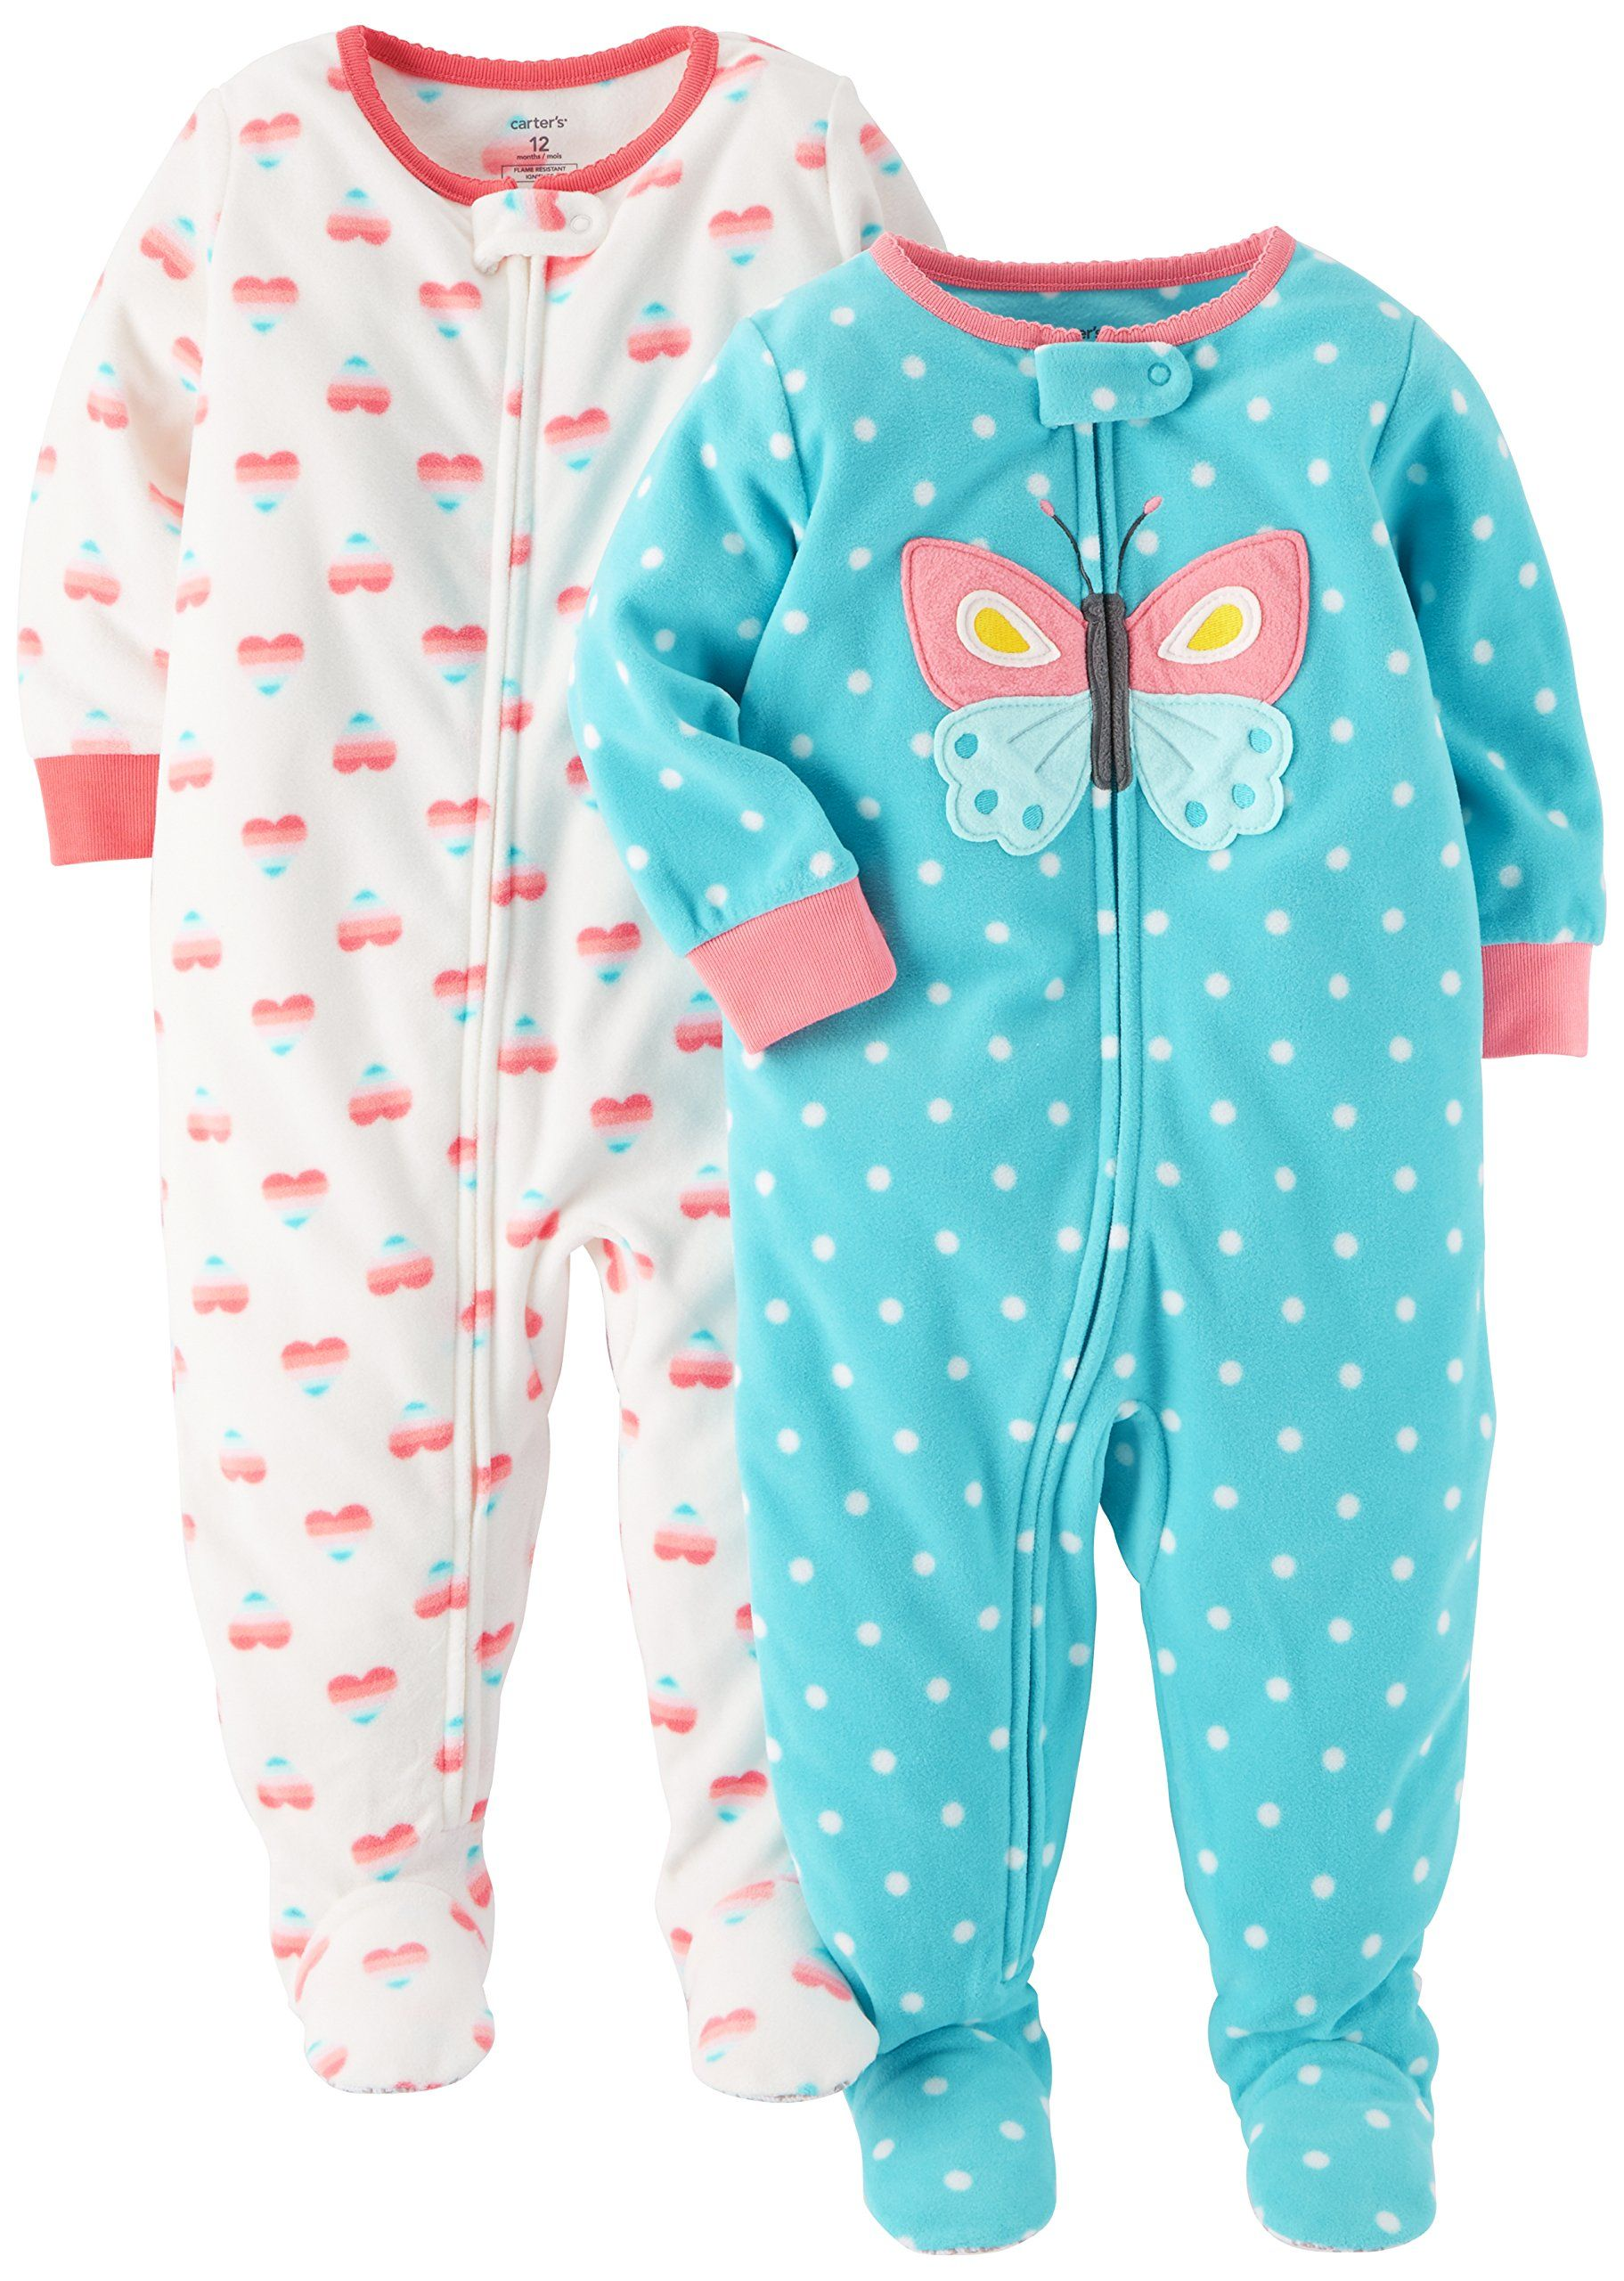 176174d39a46 Carter s Baby Girls  Toddler 2-Pack Fleece Pajamas